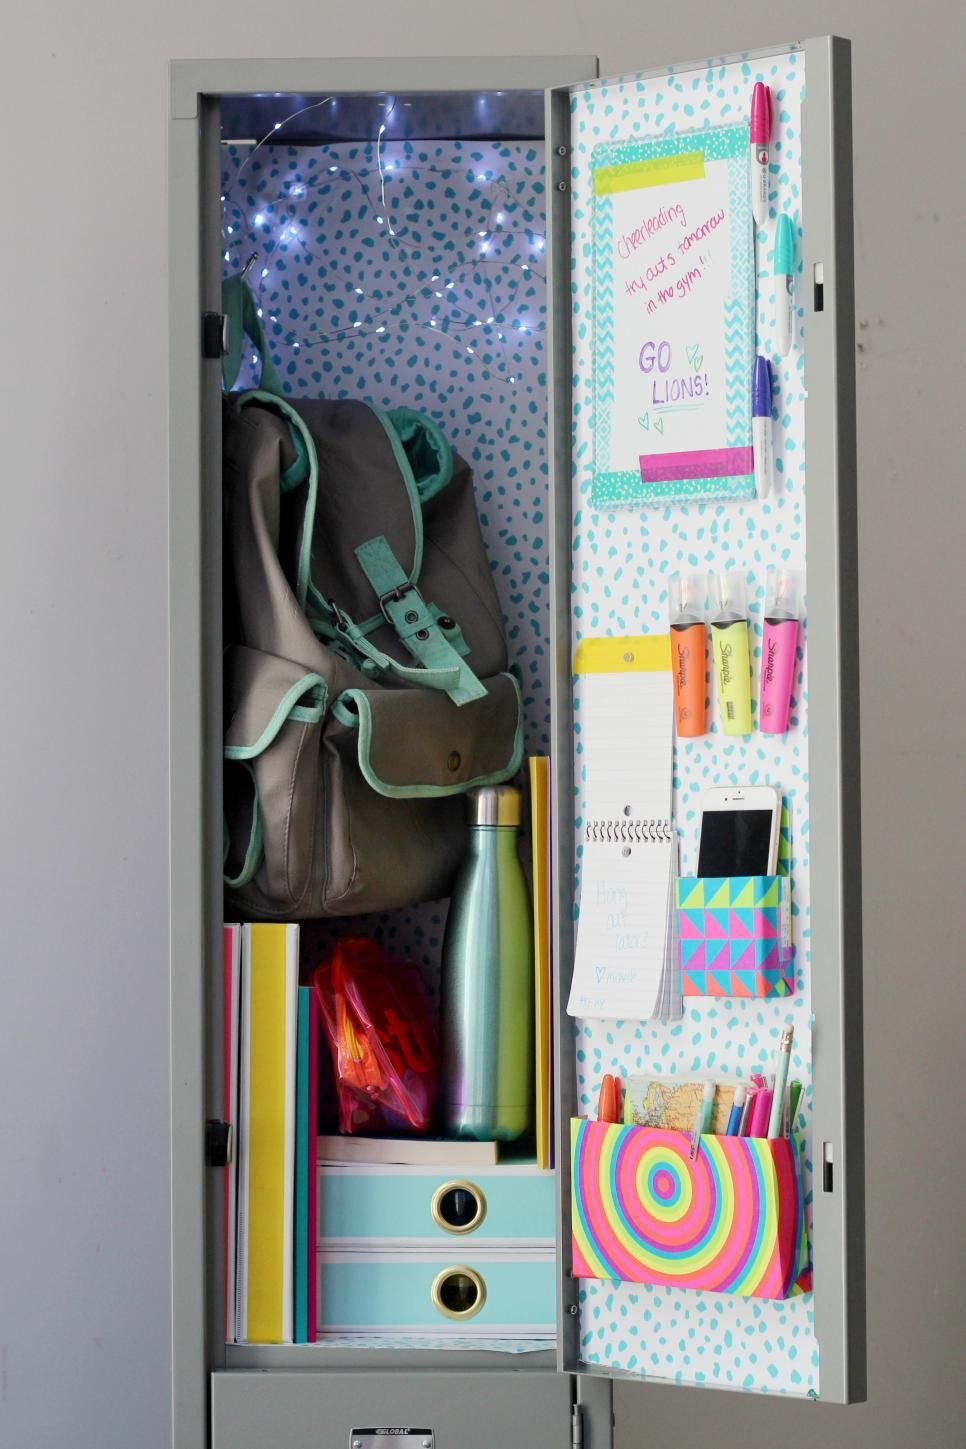 22 diy locker decorating ideas diy locker lockers and hgtv for Pinterest diy decor ideas